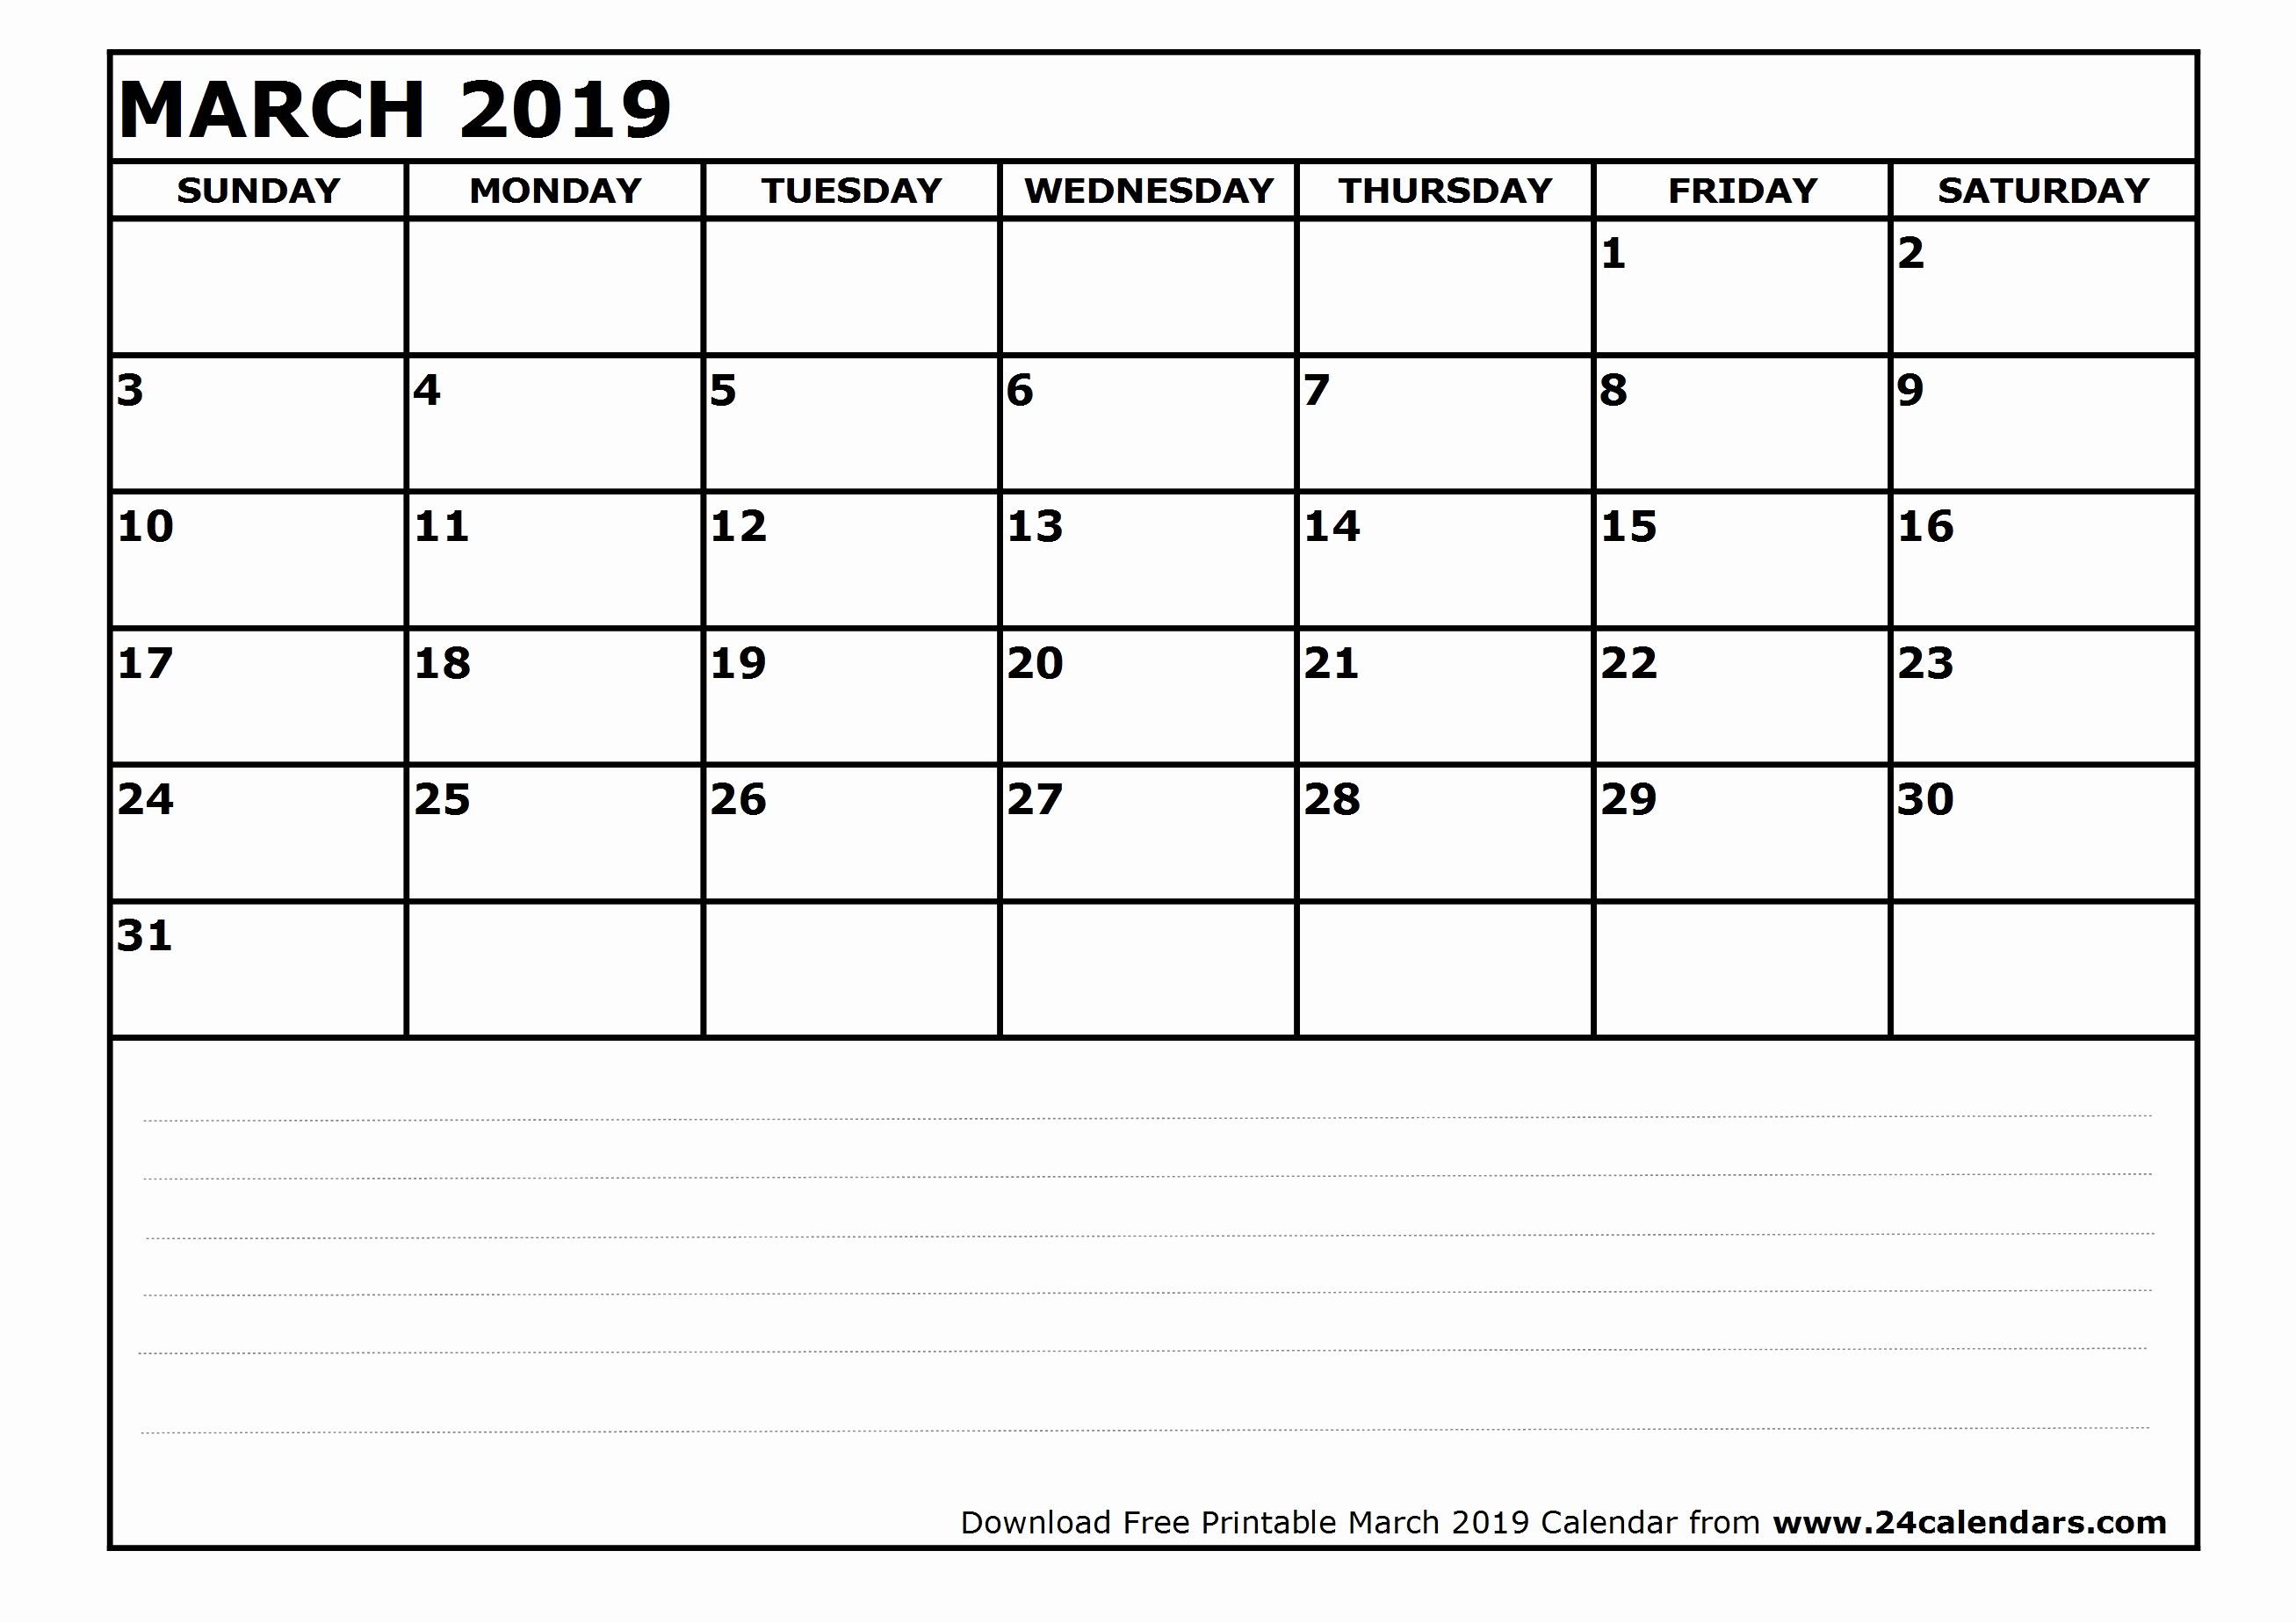 Printable Monthly Calendar March 2019 250 March 2019 Calendars